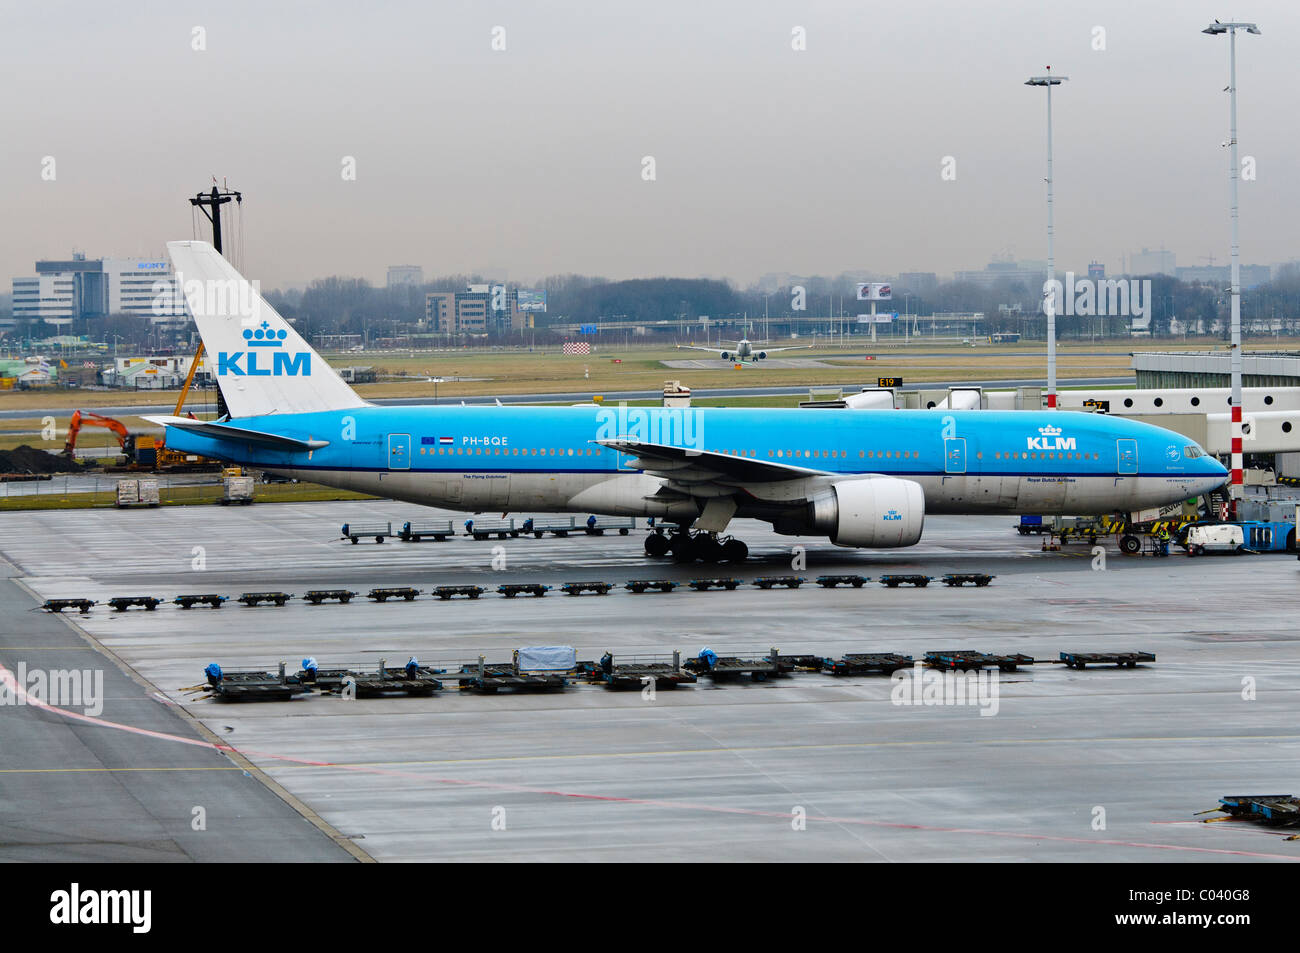 Air France KLM plane on the apron of Amsterdam Schiphol Airport Stock Photo